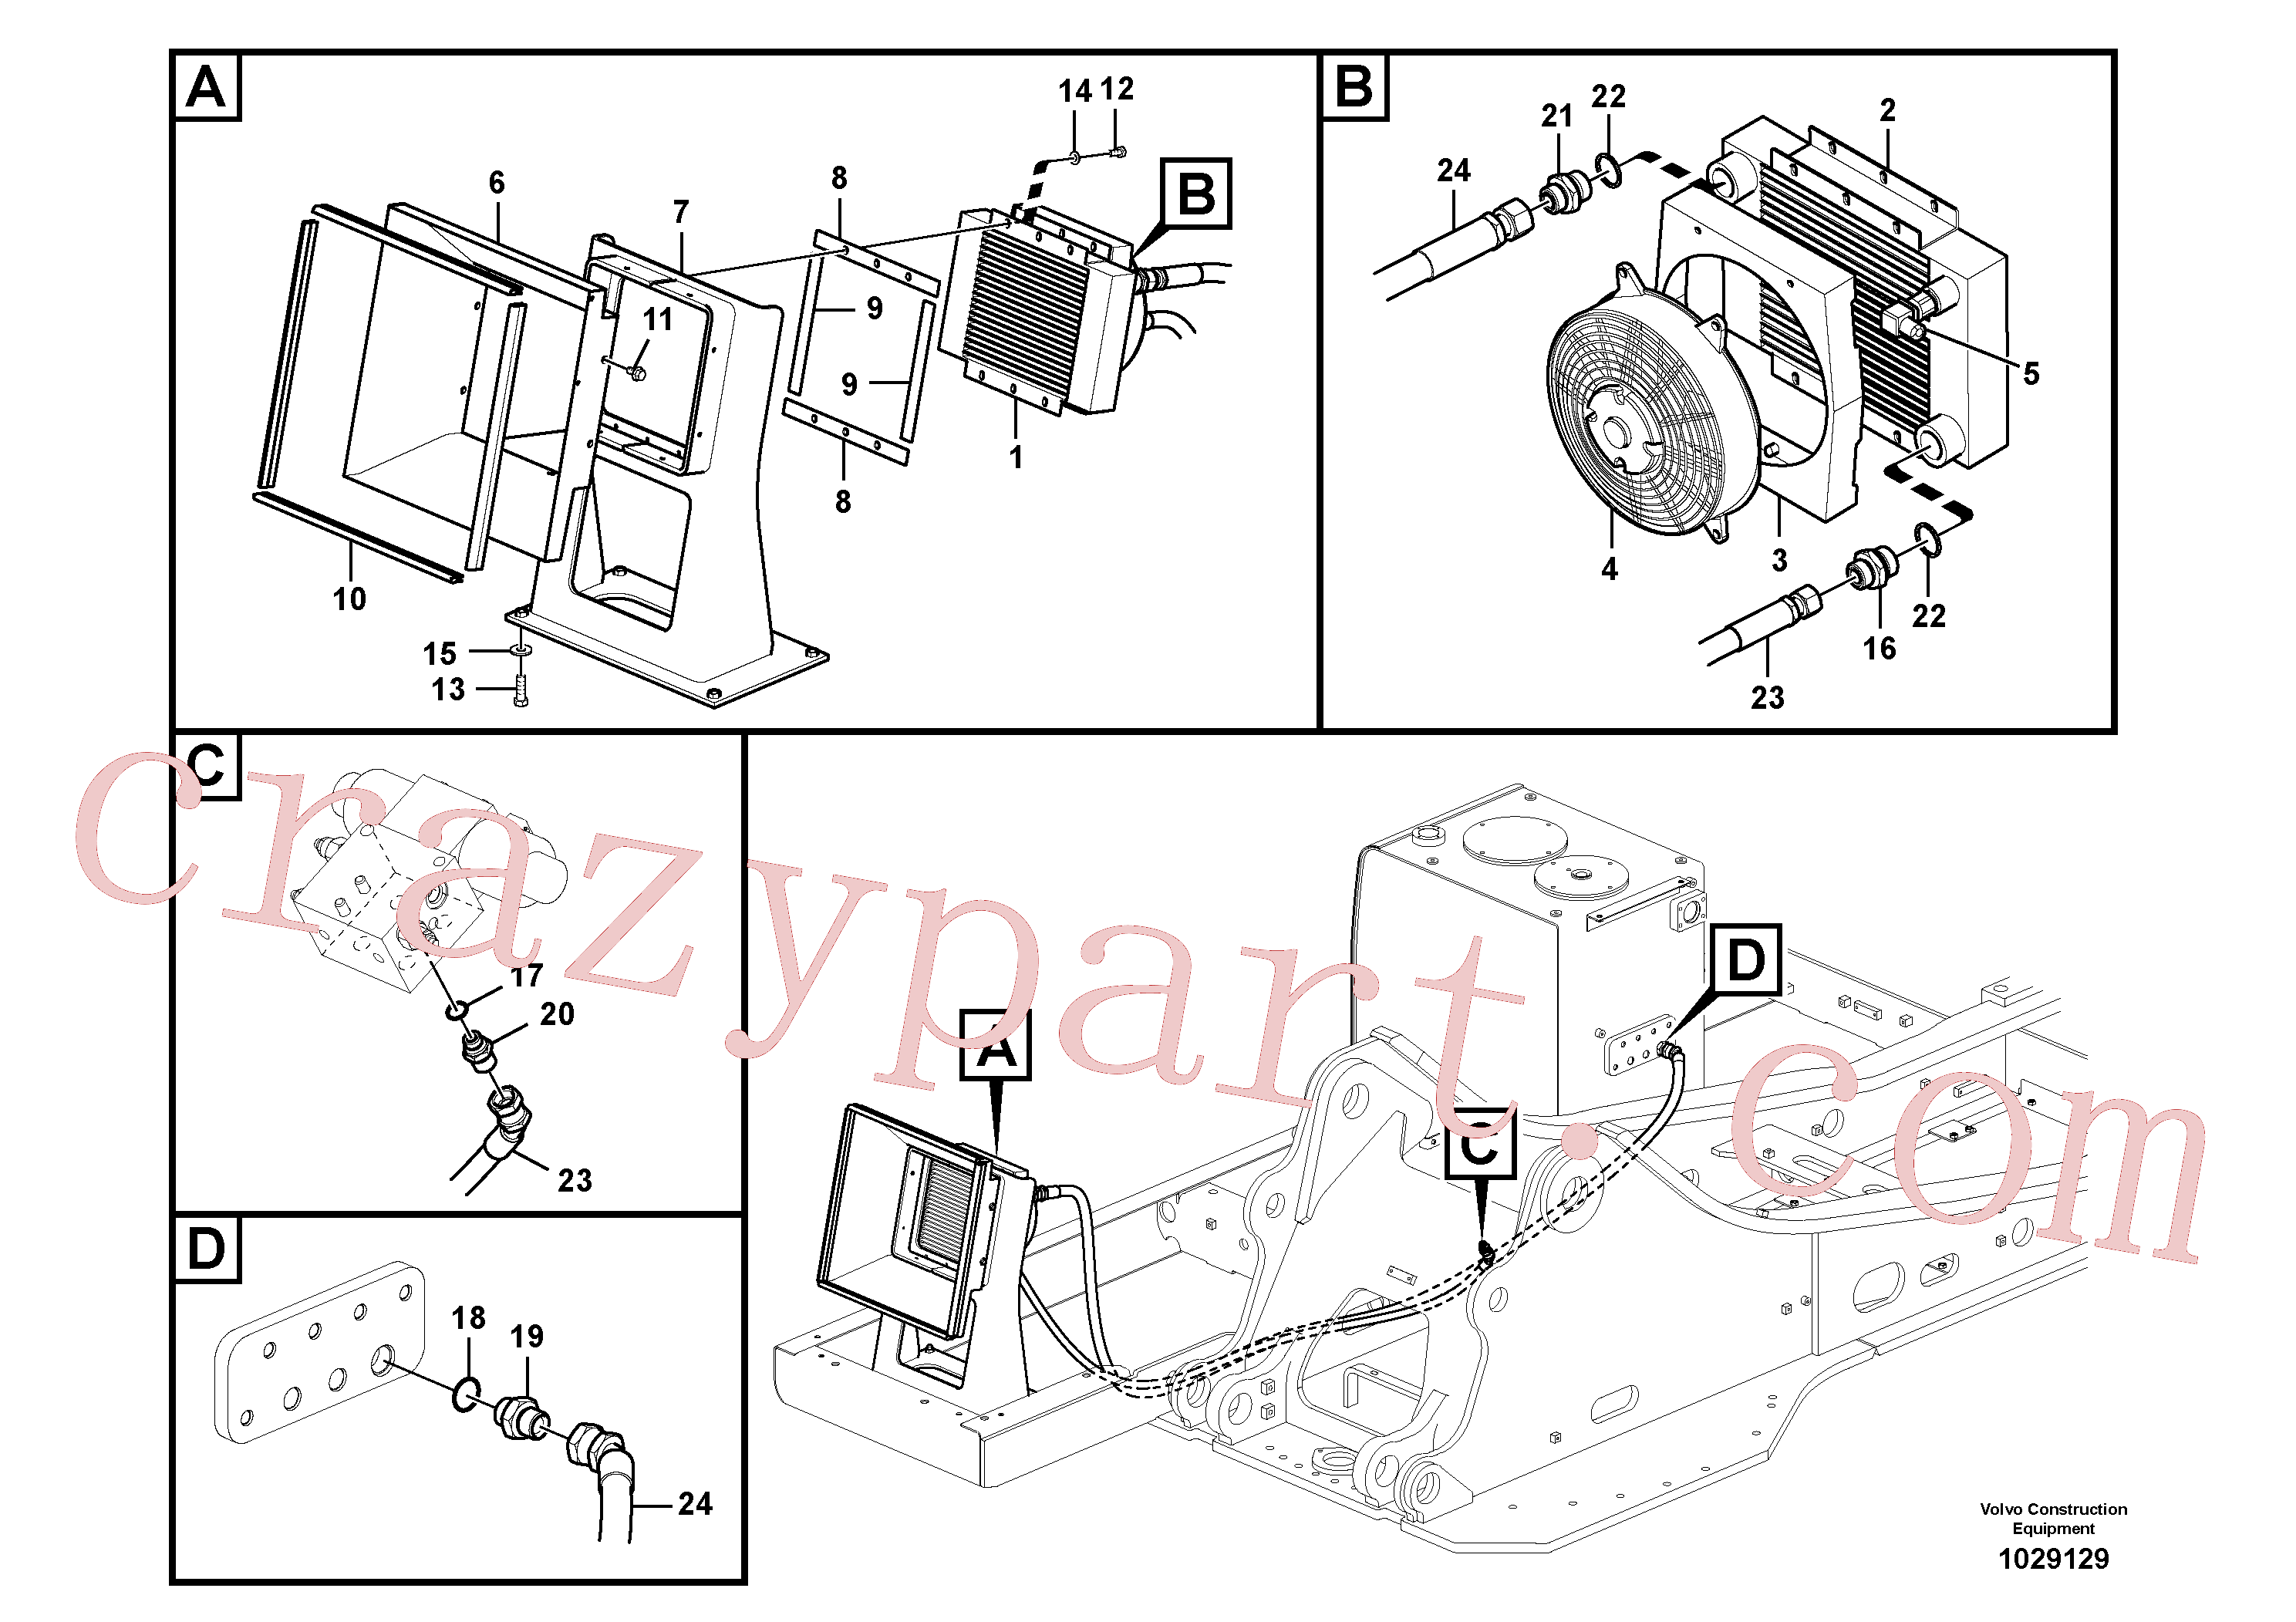 SA9412-12190 for Volvo Hydraulic system, hydraulic tank to hydraulic oil cooler(1029129 assembly)